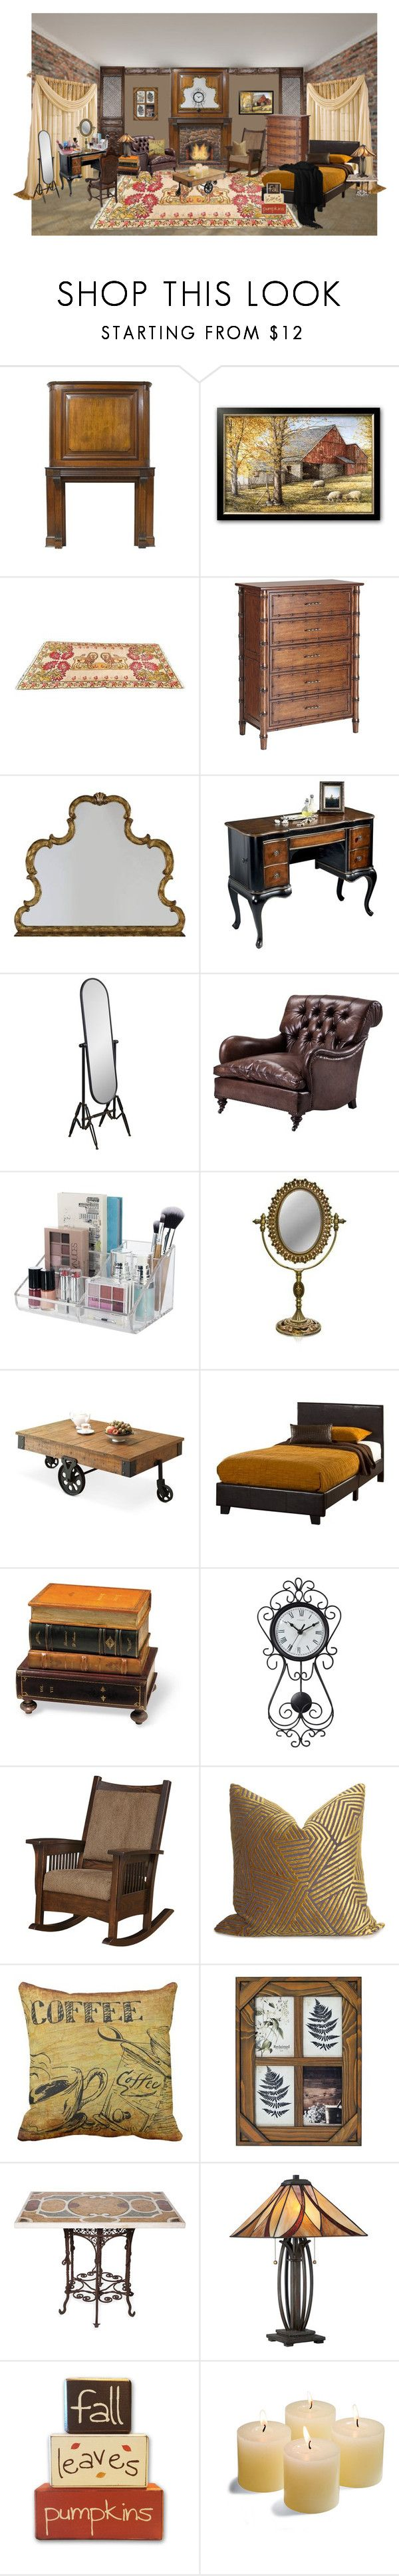 """Untitled #721"" by bamasbabes on Polyvore featuring interior, interiors, interior design, home, home decor, interior decorating, Pier 1 Imports, Hooker Furniture, Butler Specialty Company and Cooper Classics"